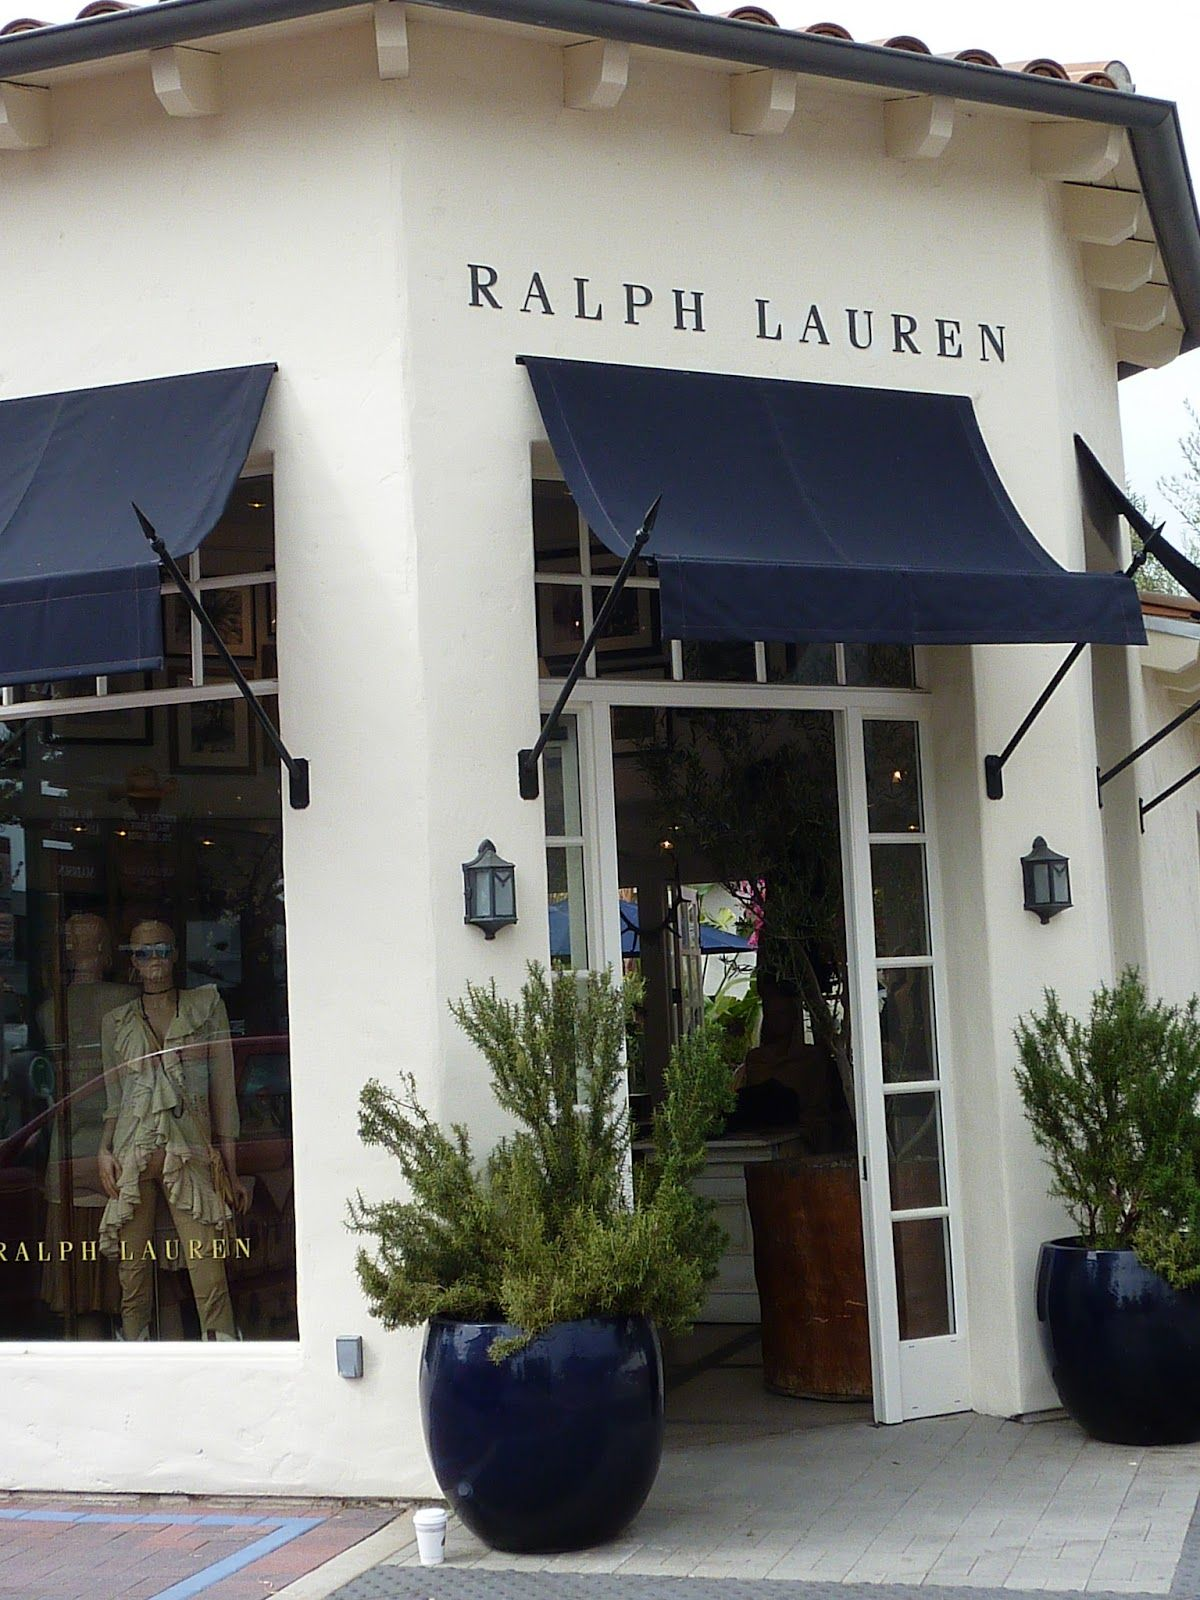 Navy And White Oh Mr Lauren Storefronts Shop Awning